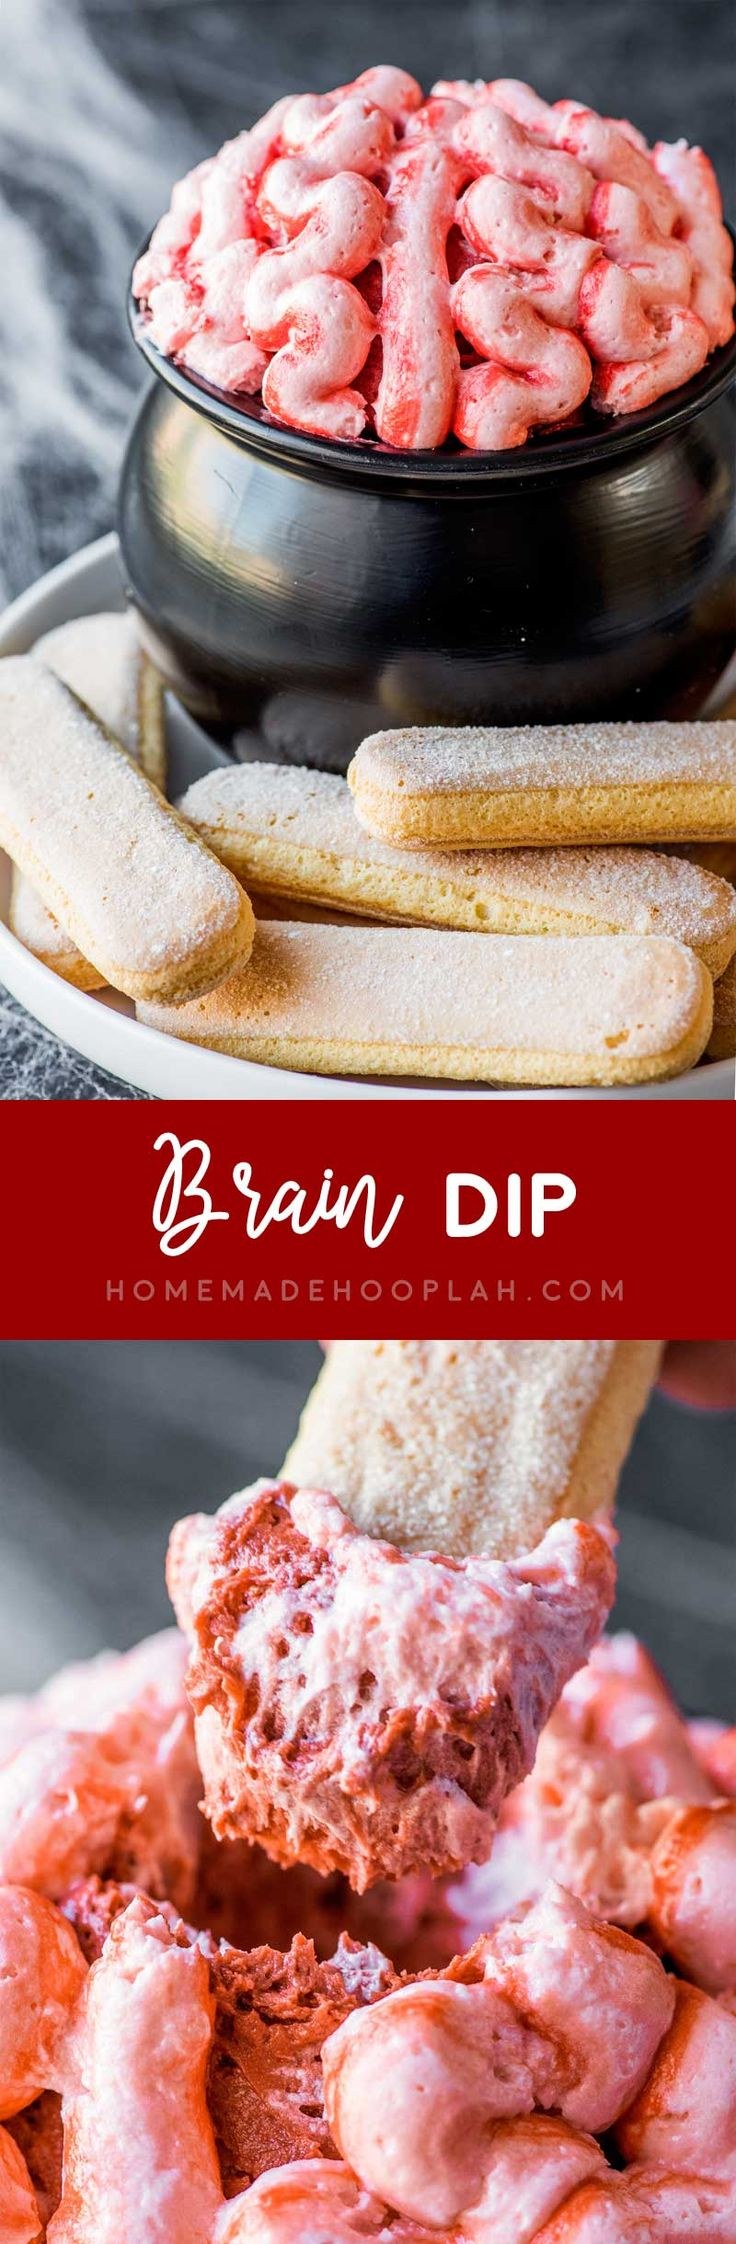 Brain Dip! This creepy Halloween dip is as tasty as it is fun! Red velvet cake batter dip is covered in cream cheese frosting and served with ladyfingers for dipping. | HomemadeHooplah.com